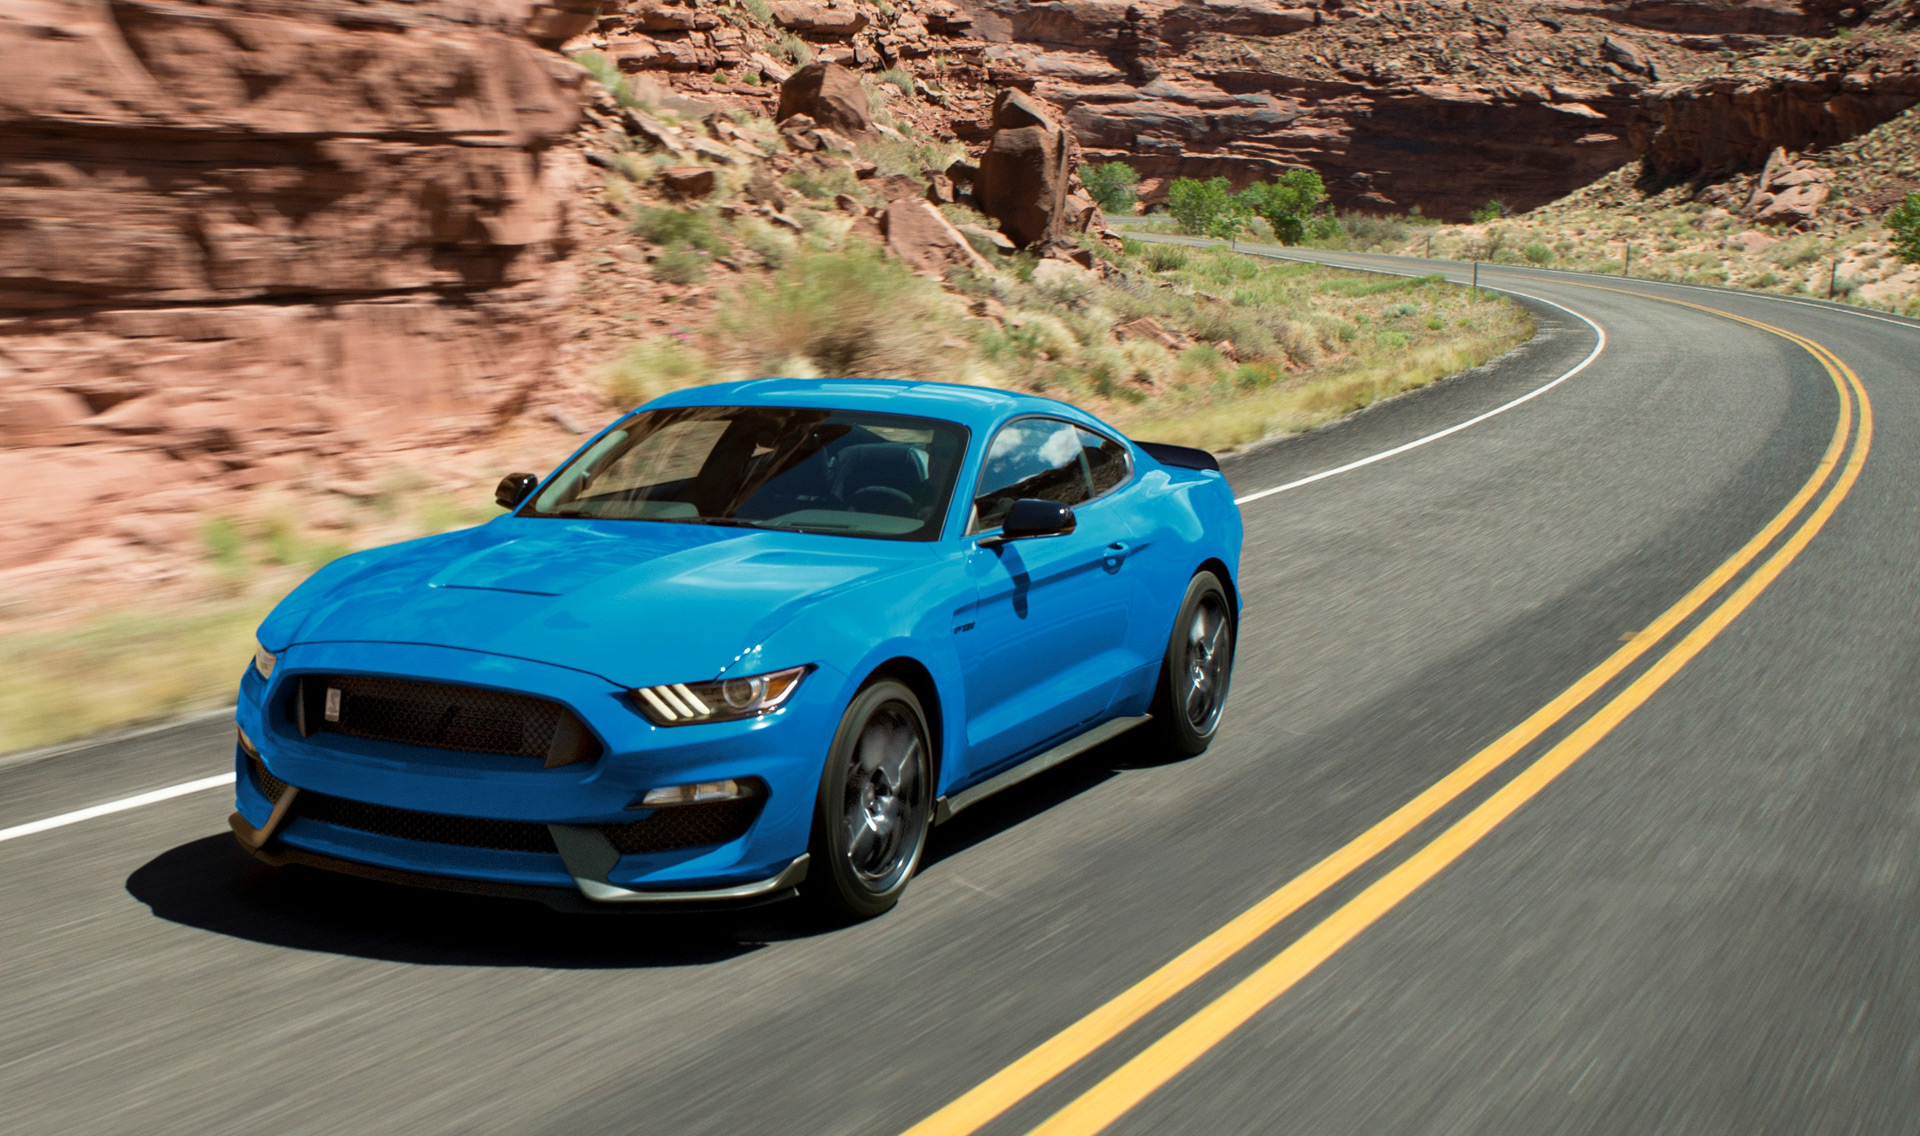 2018 Shelby Gt350 >> 2018 Ford Mustang Shelby GT350 keeps old looks, gains new colors